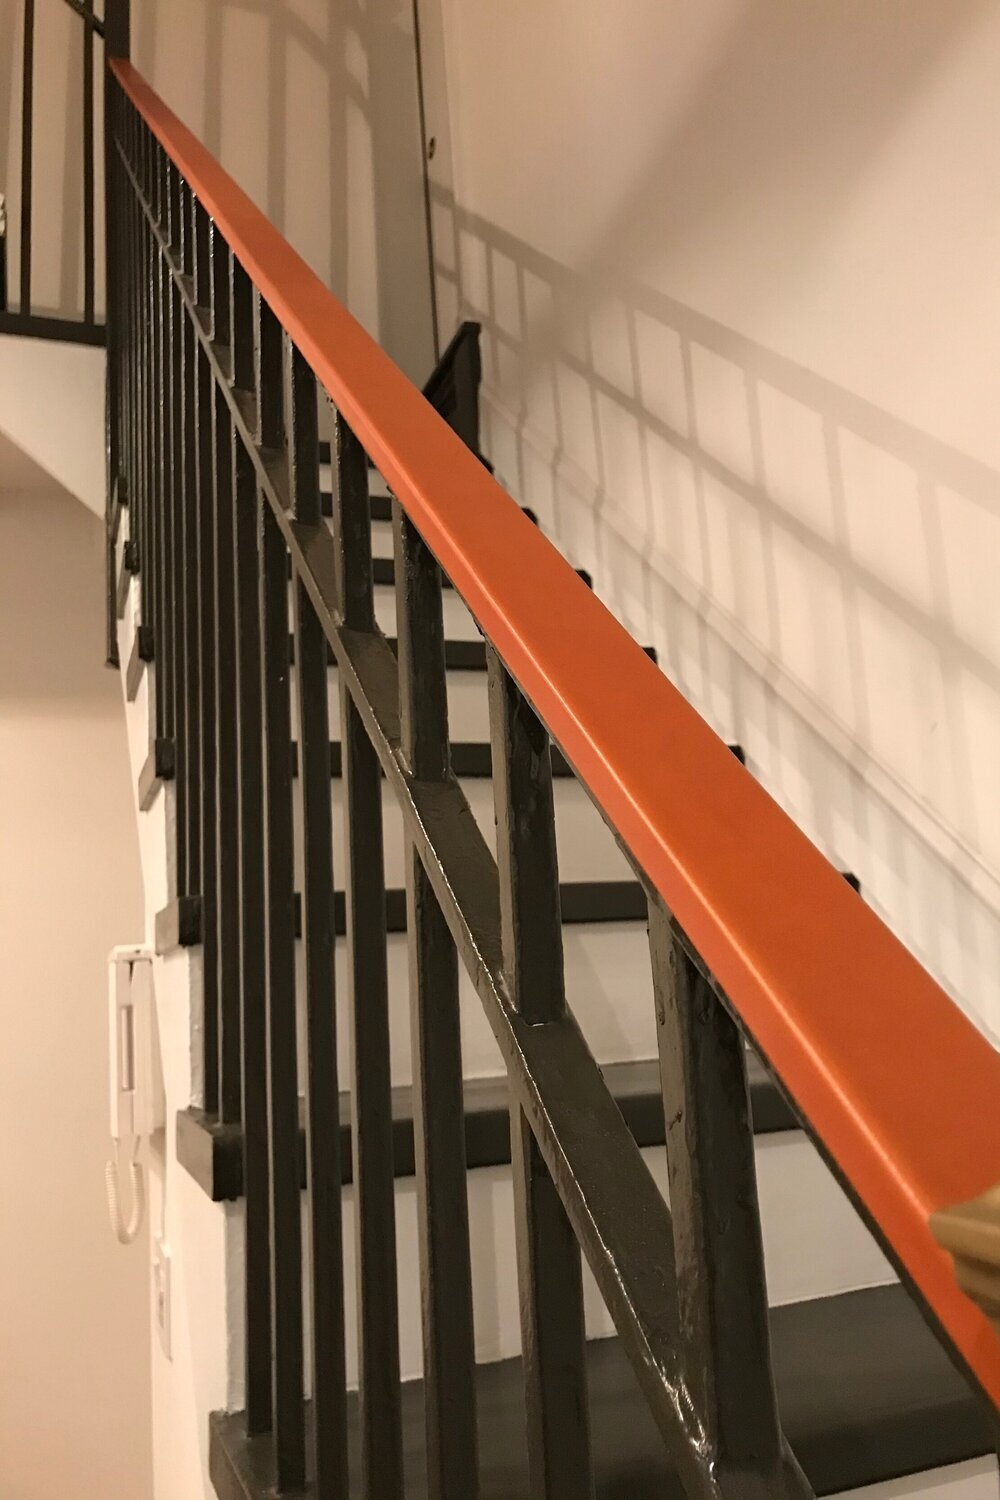 Custom Handrails Made With Leather — Jay Teske Leather Co | Bannister Rails For Stairs | Pipe | Build Stair | Deck | Outdoor | 5 Step